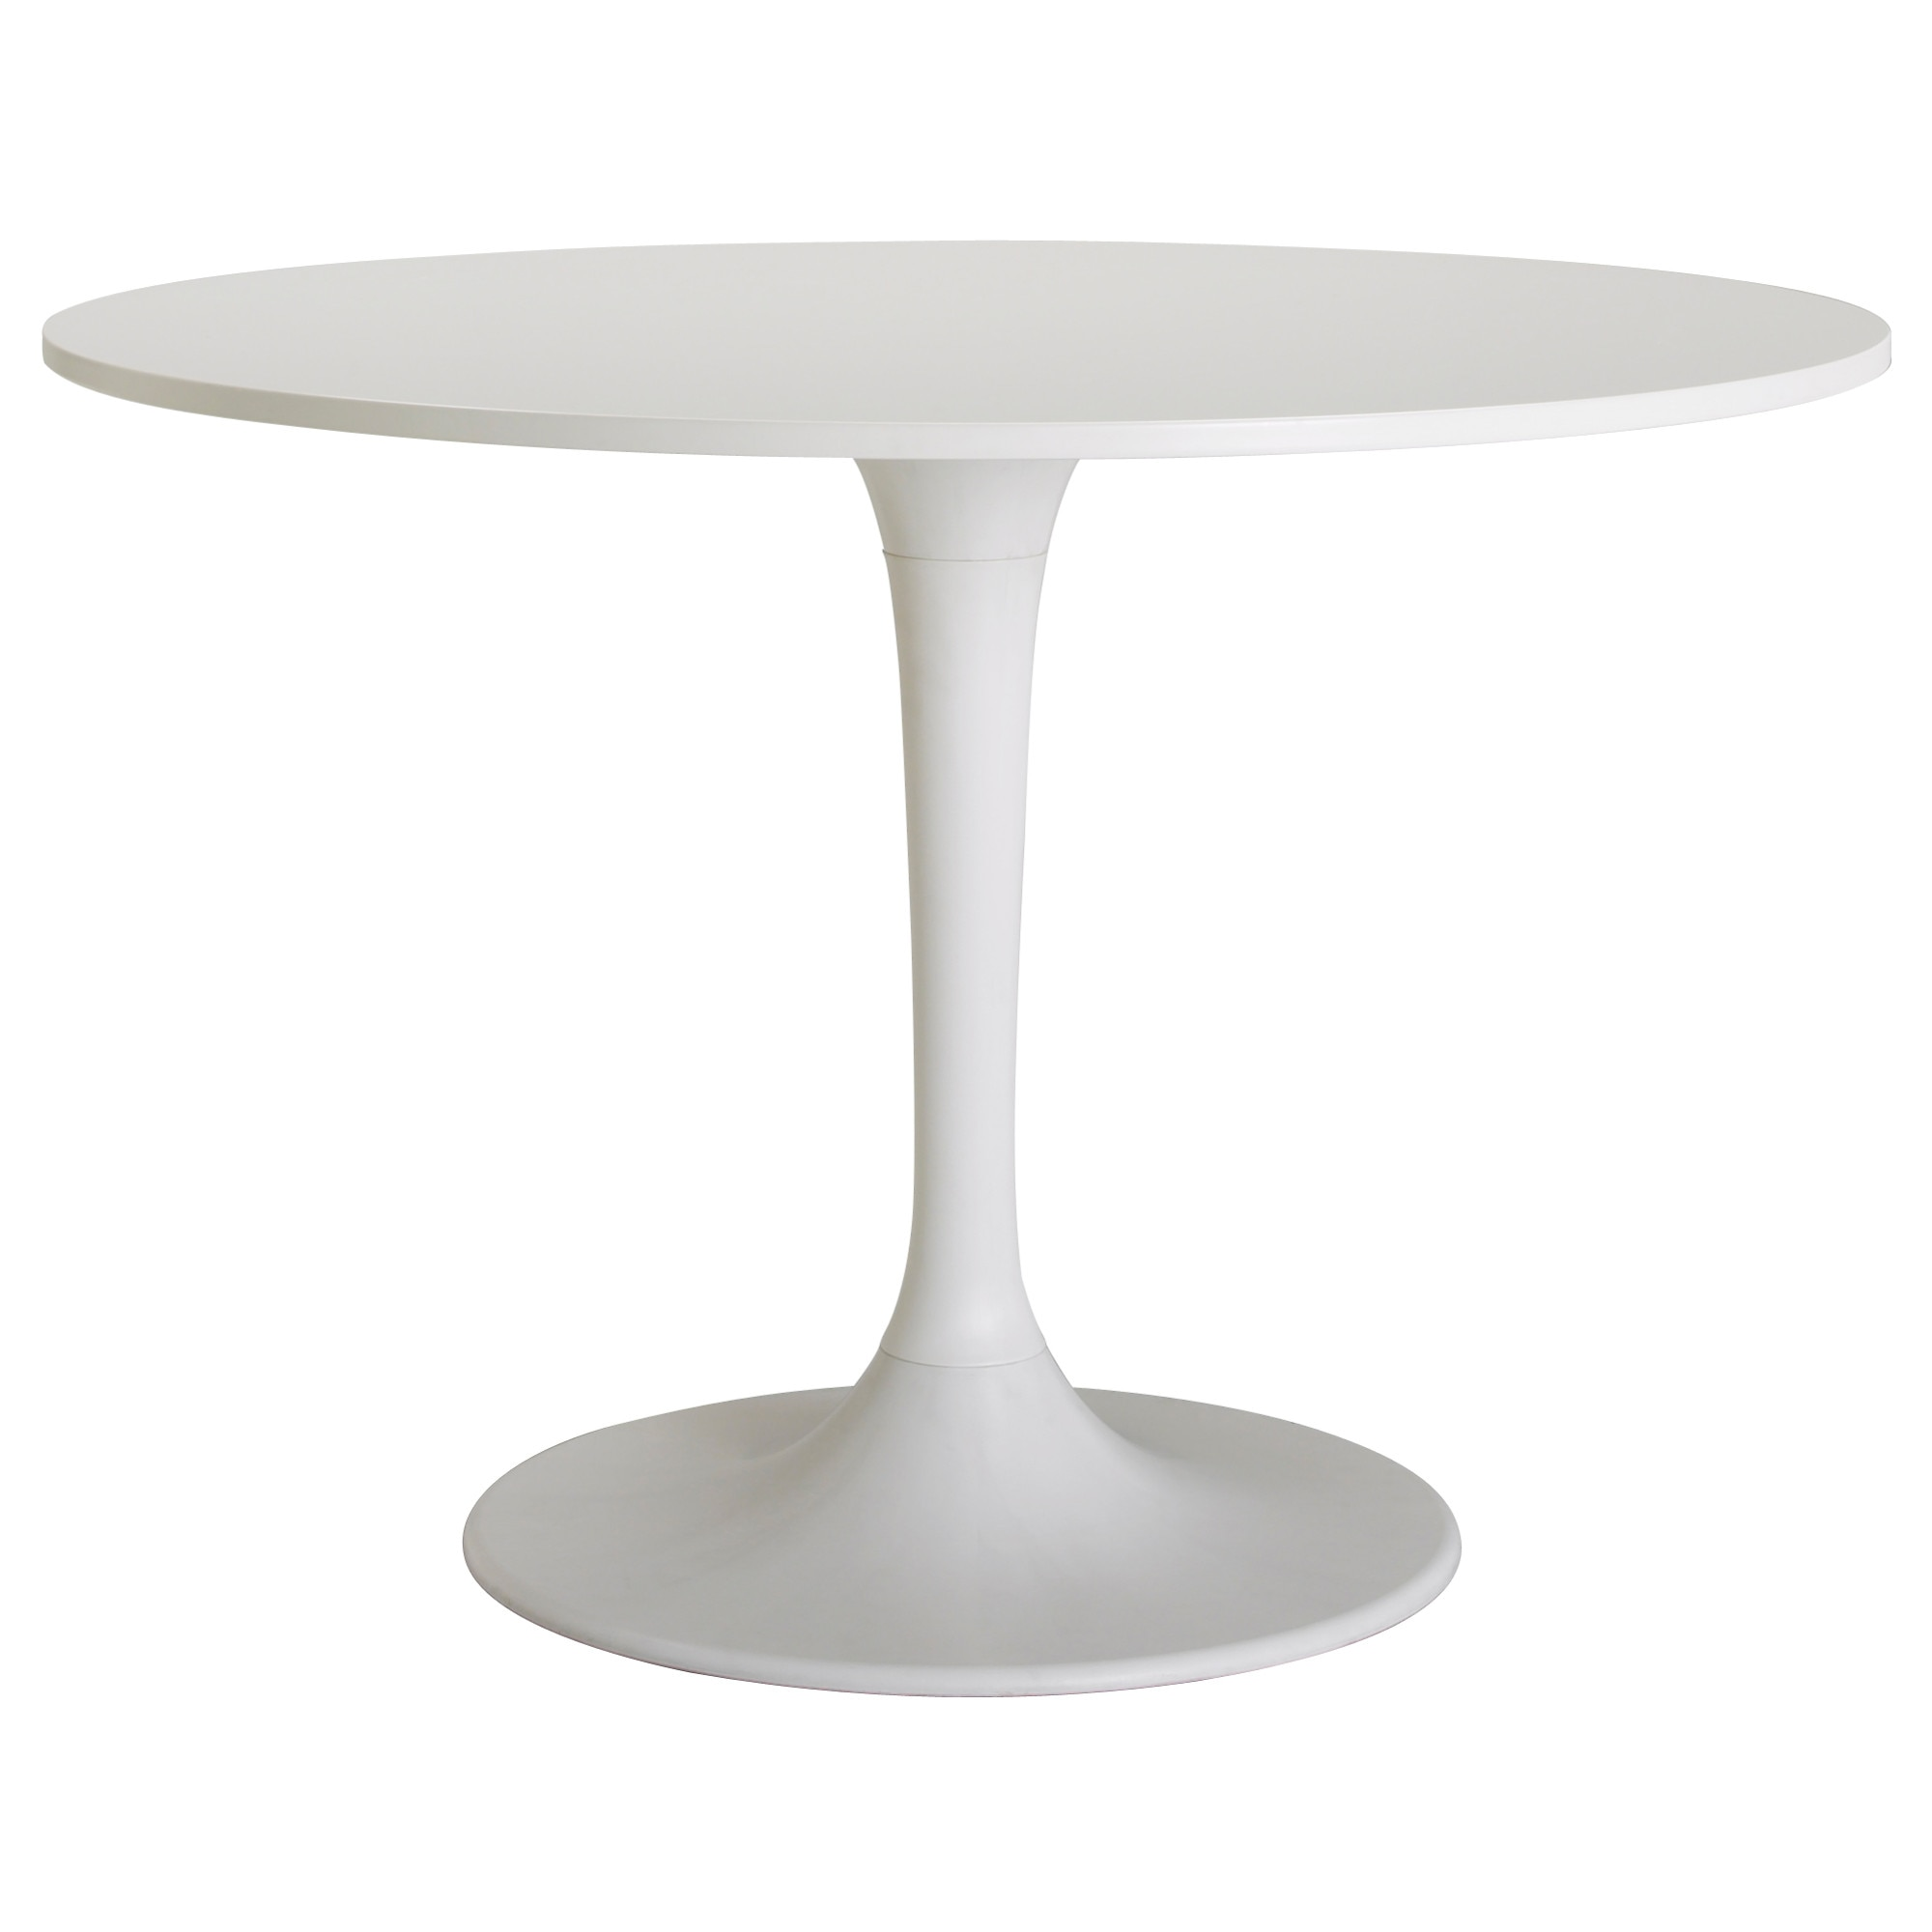 Modern round pedestal dining table - Modern Round Pedestal Dining Table 31